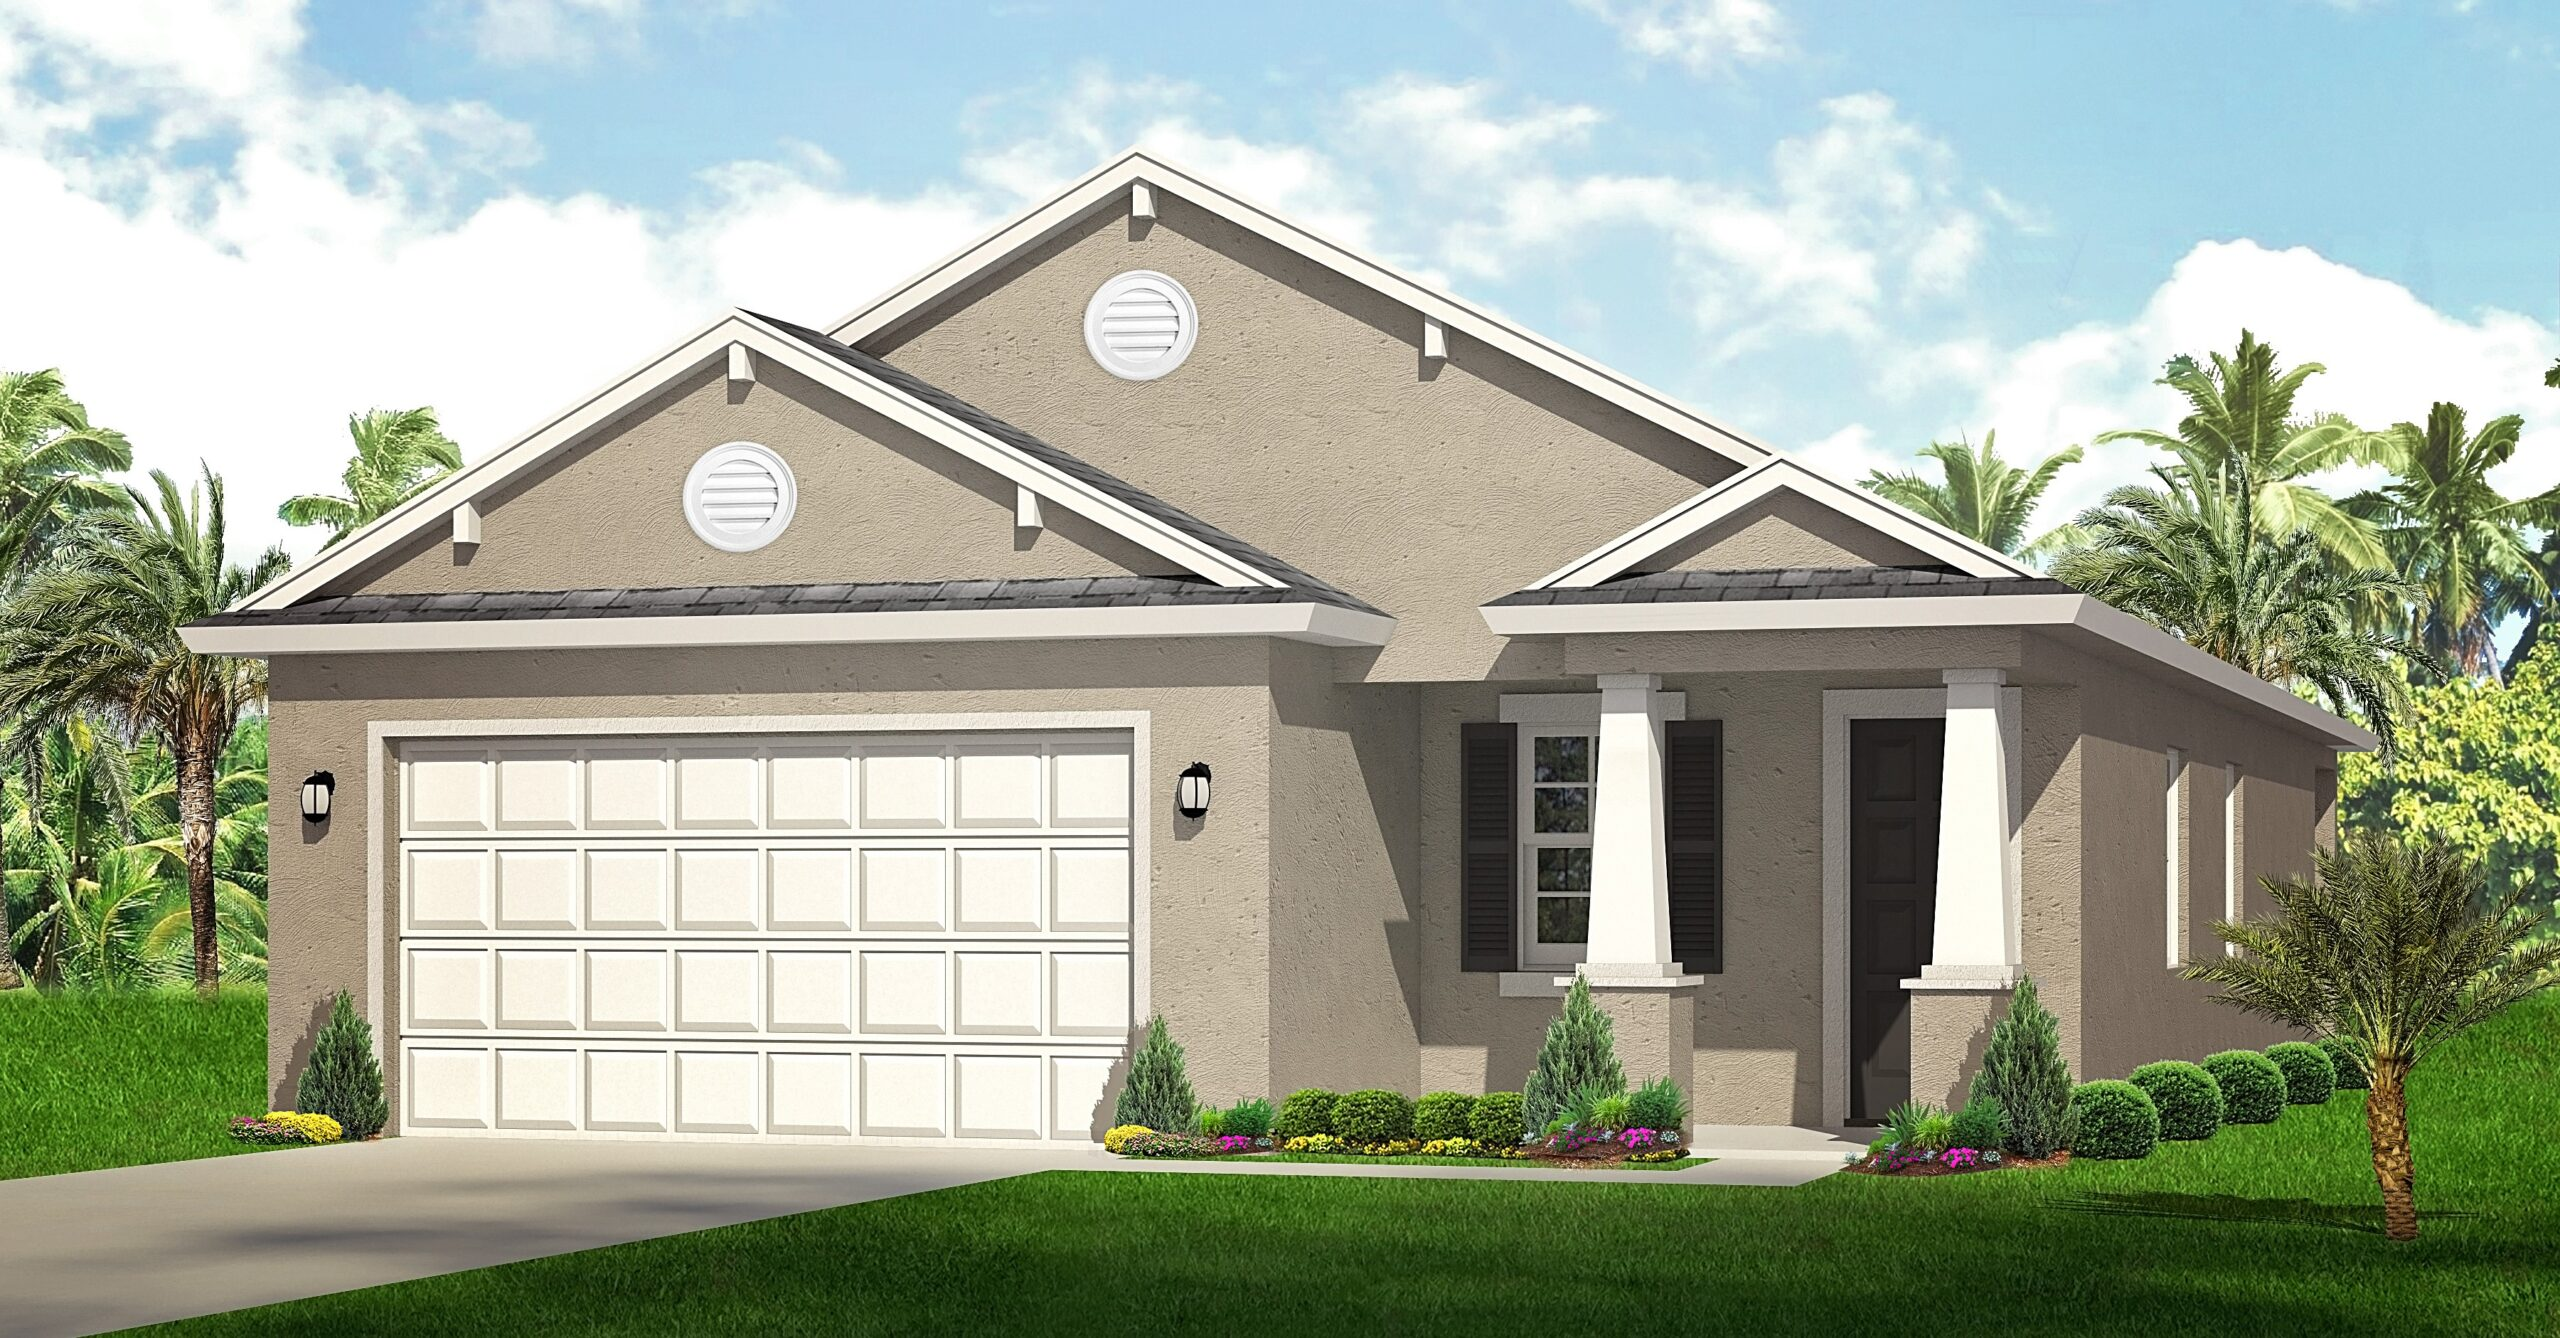 The Sarah Jane Home Model | Covenant Homes